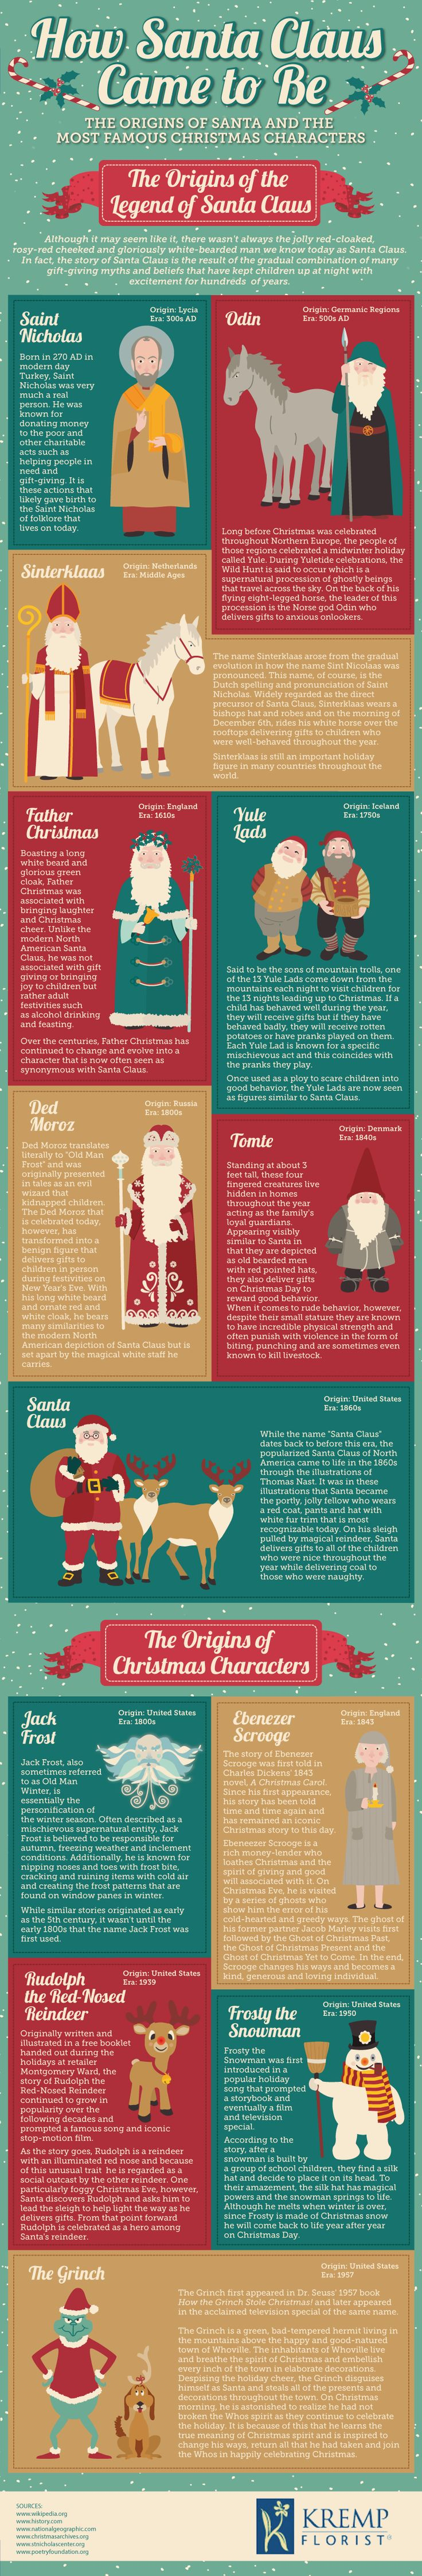 Facts about Santa Claus That Will Impress Your Friends - Tipsographic